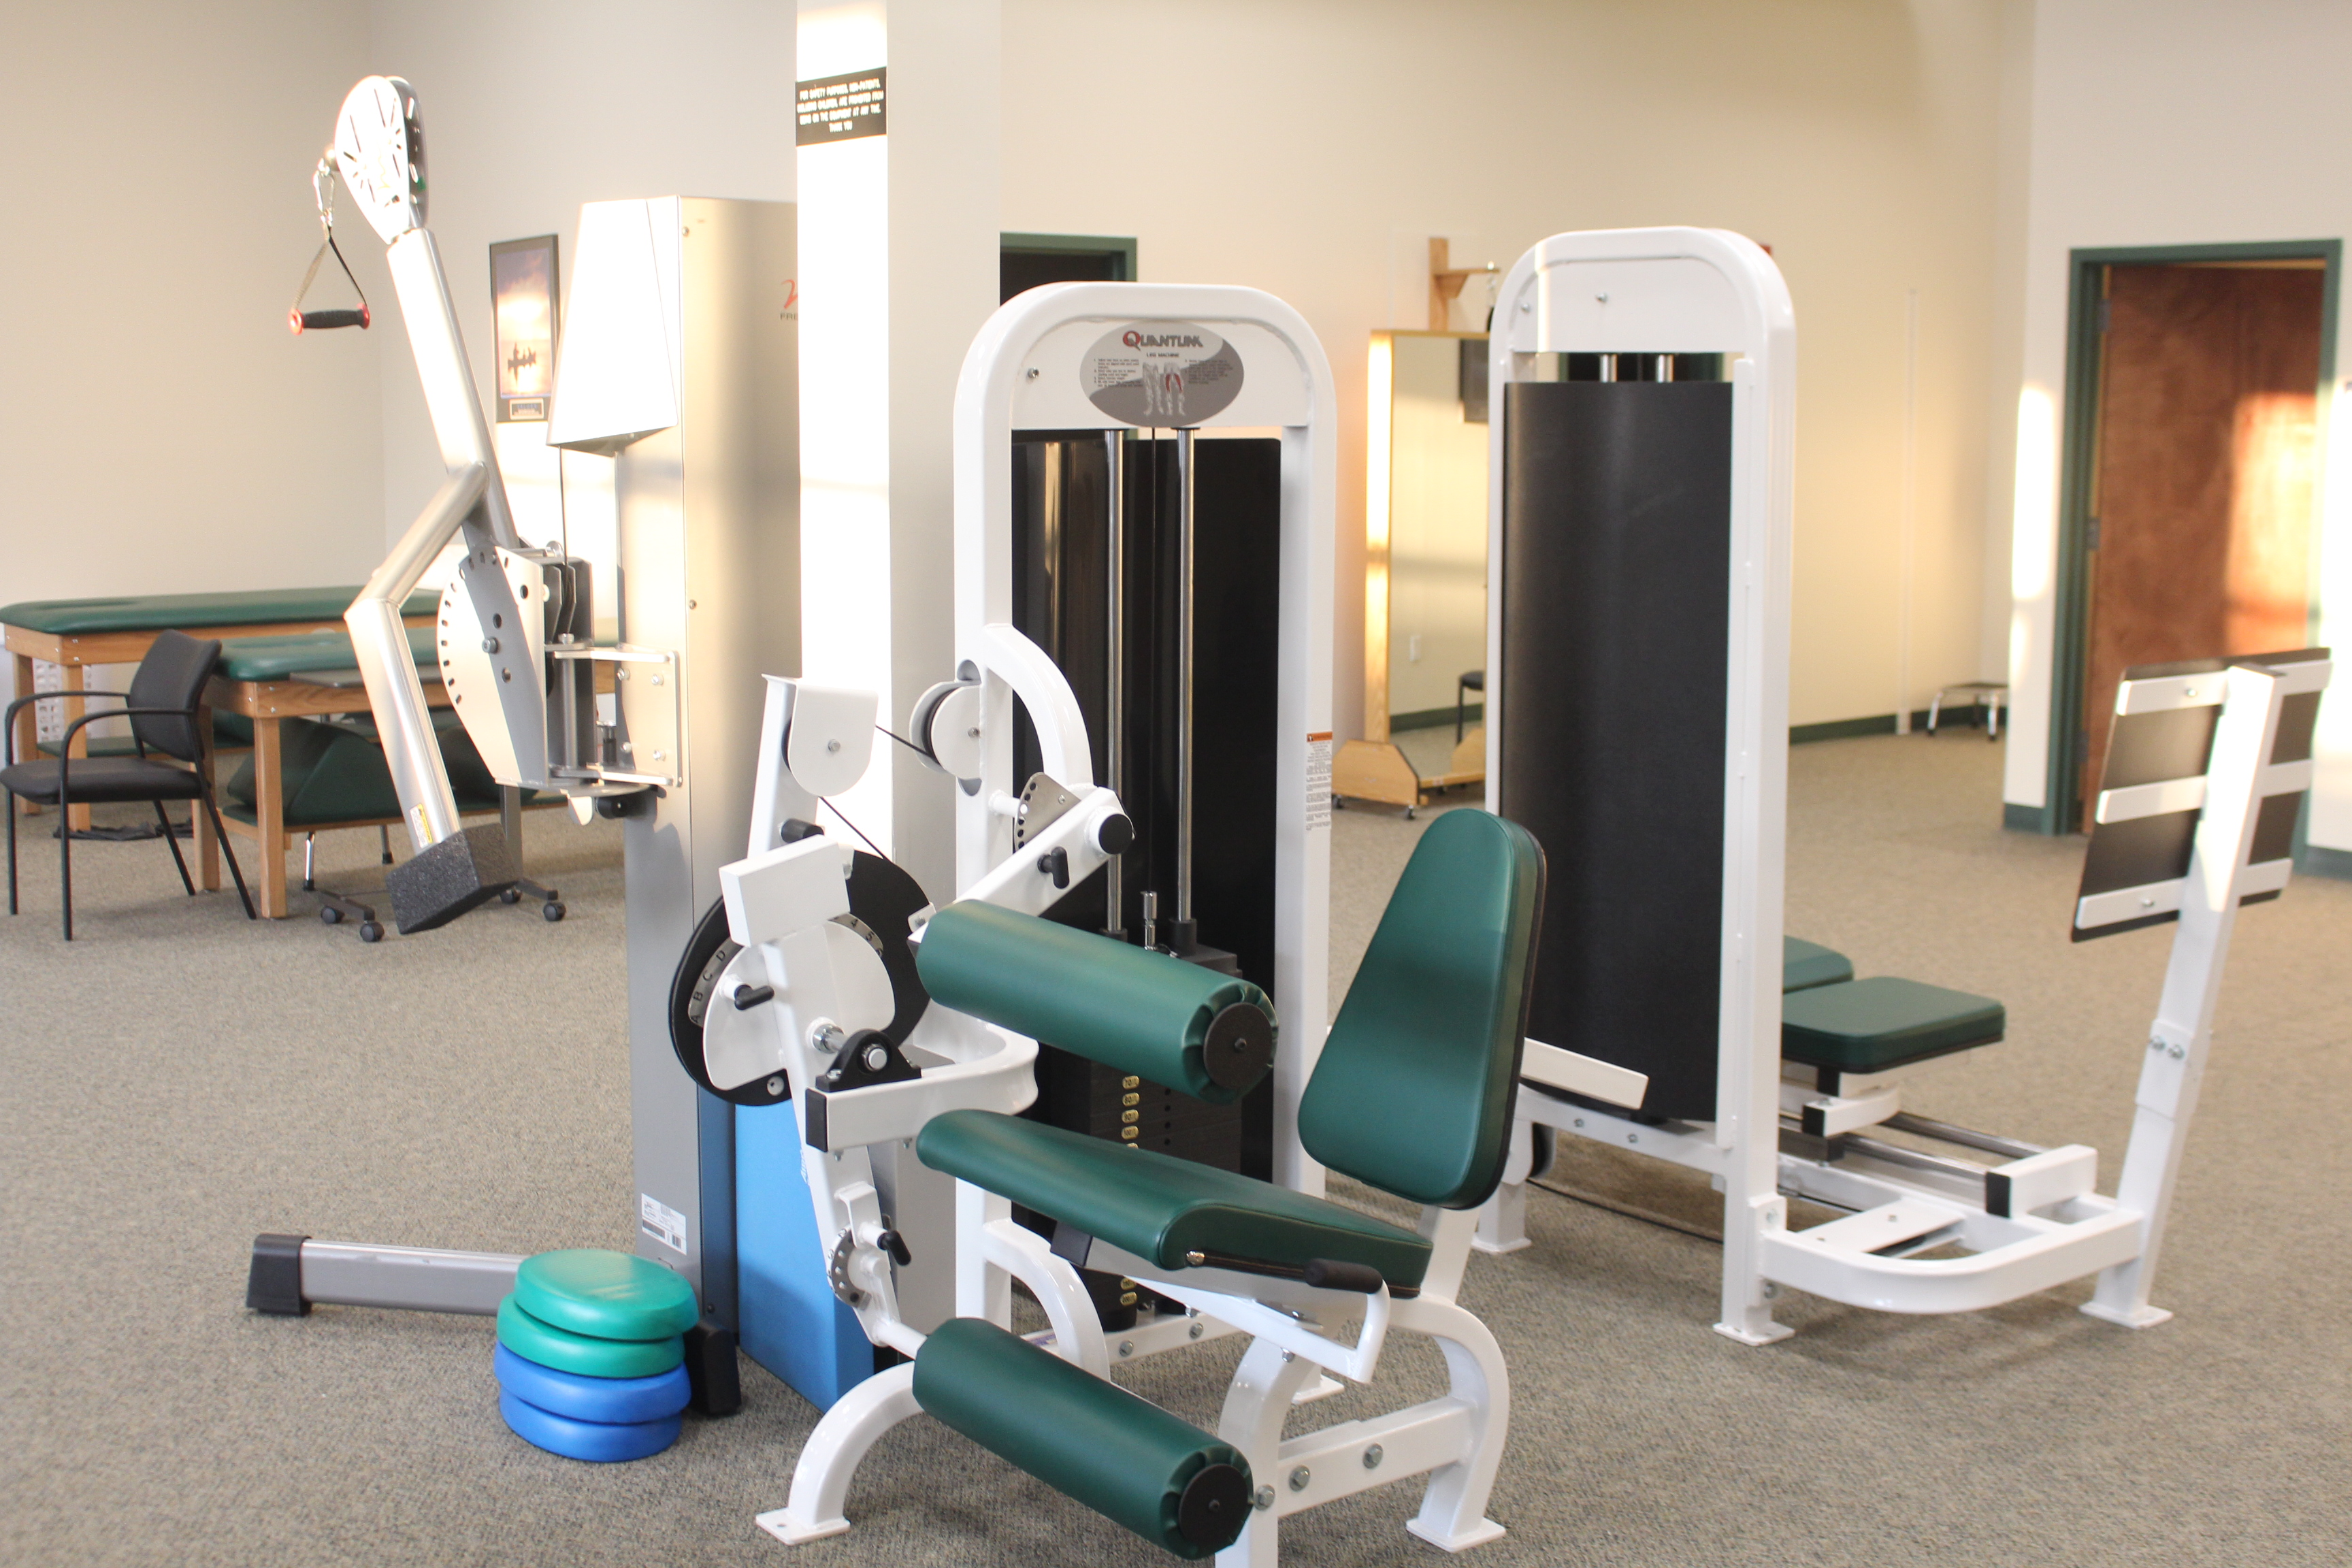 Garden state physical therapy - The Center Specializes In Manual Therapy Neurological Rehabilitation Orthopedics Pain Management Pre And Post Operative Rehabilitation Sports Medicine